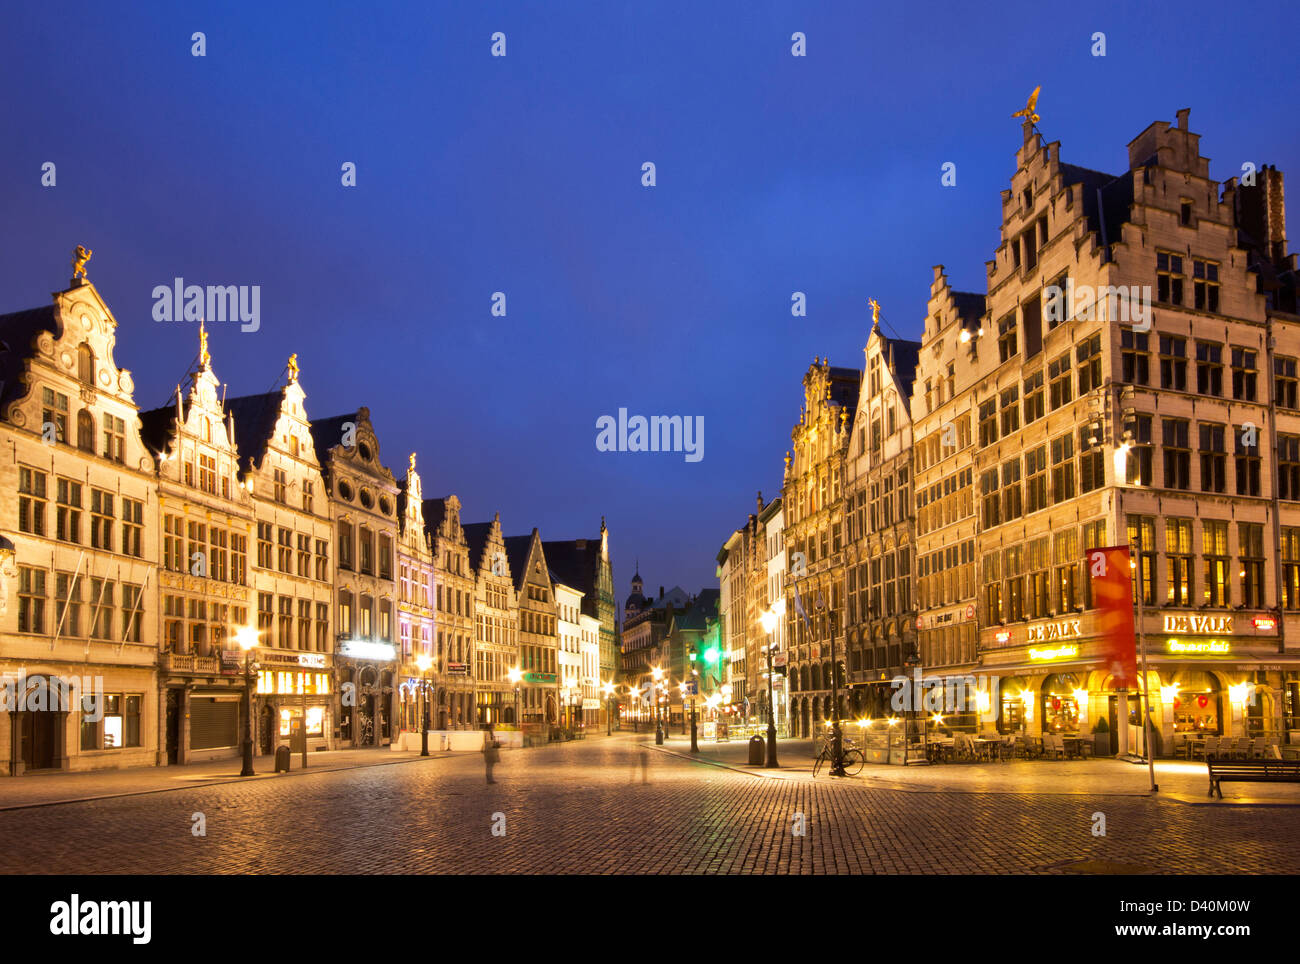 Antwerp by night - Diamond street walkway surrounded by traditional old houses. - Stock Image